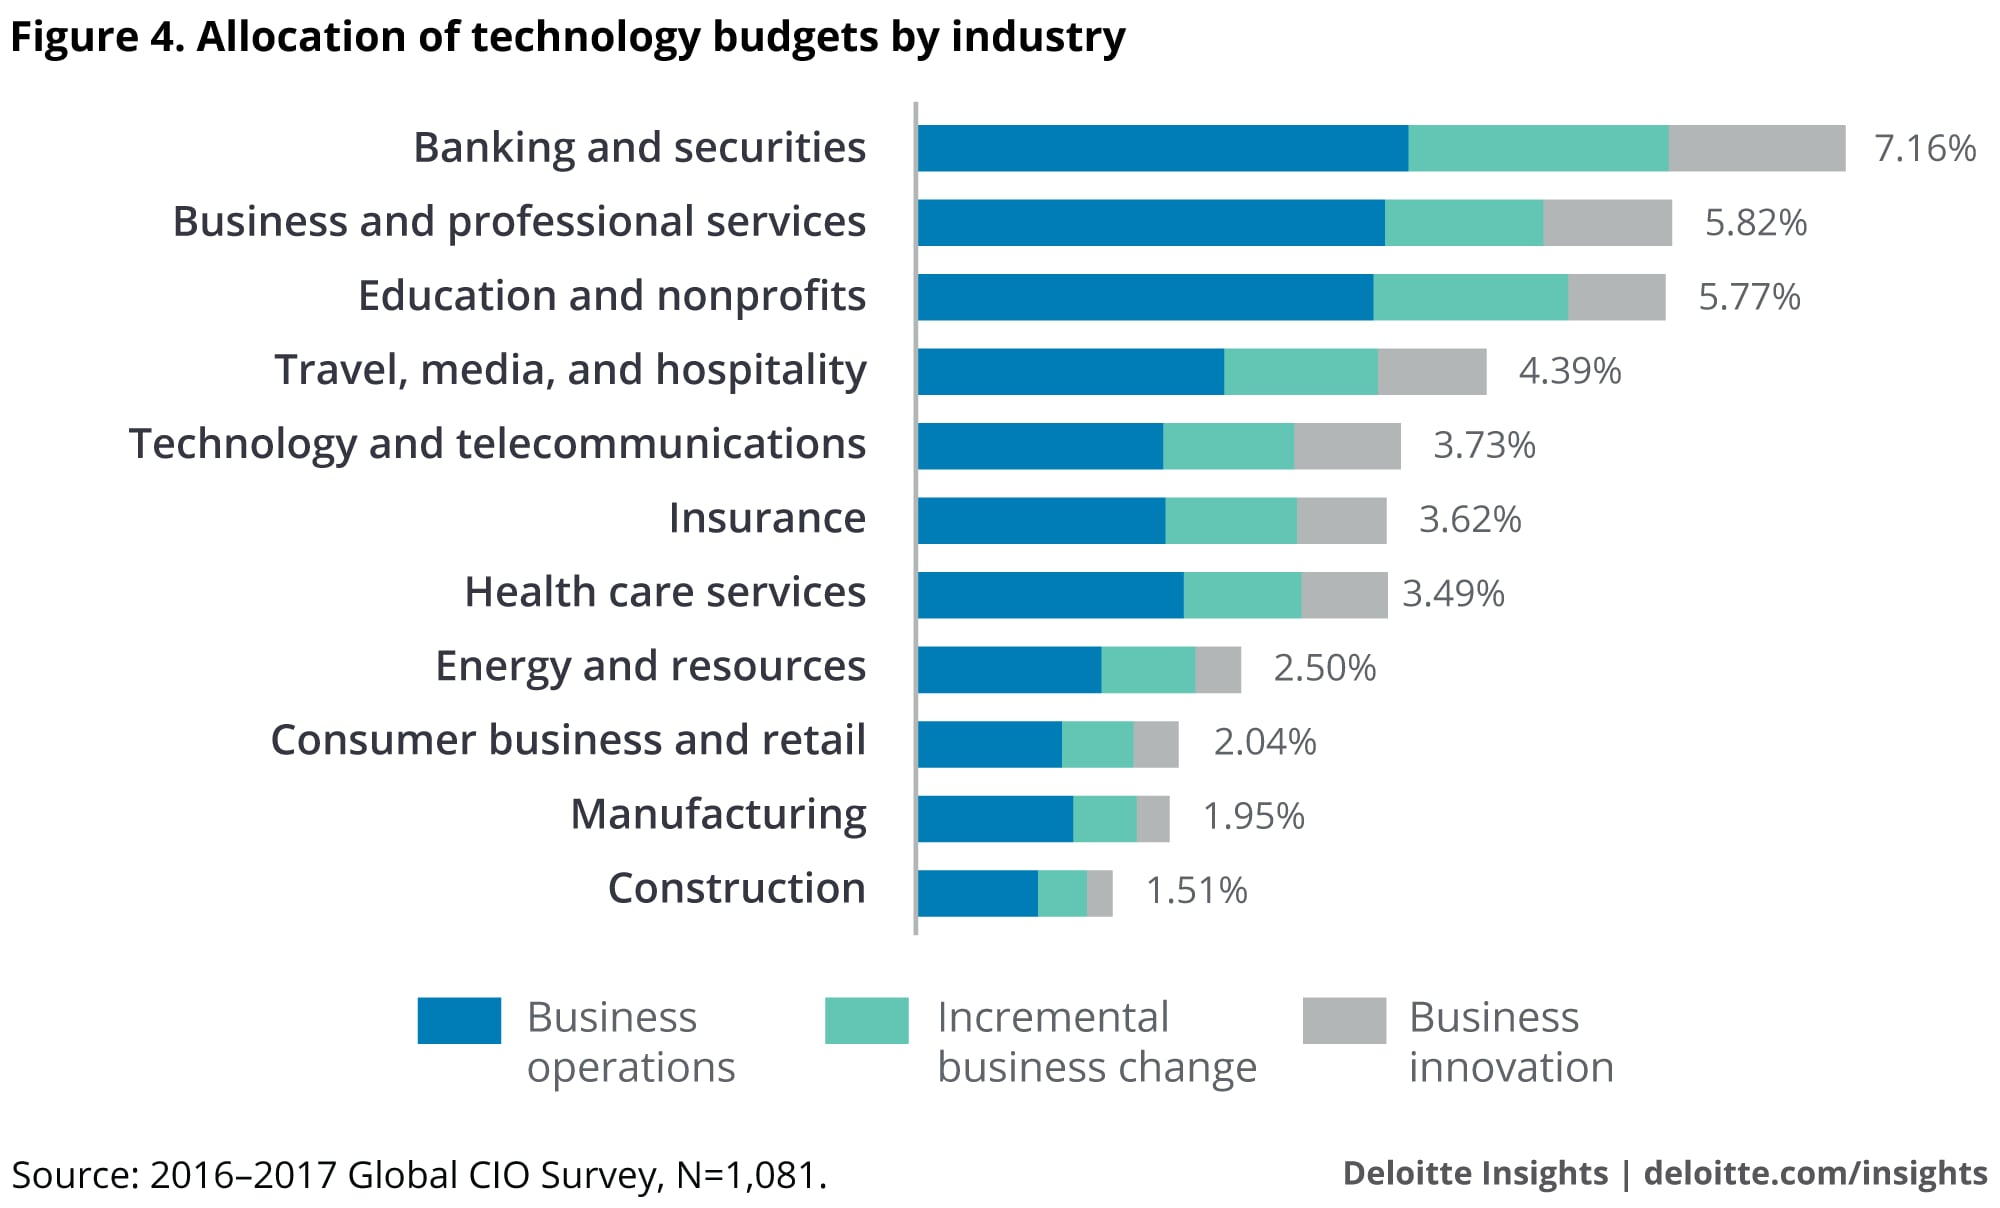 Allocation of technology budgets by industry